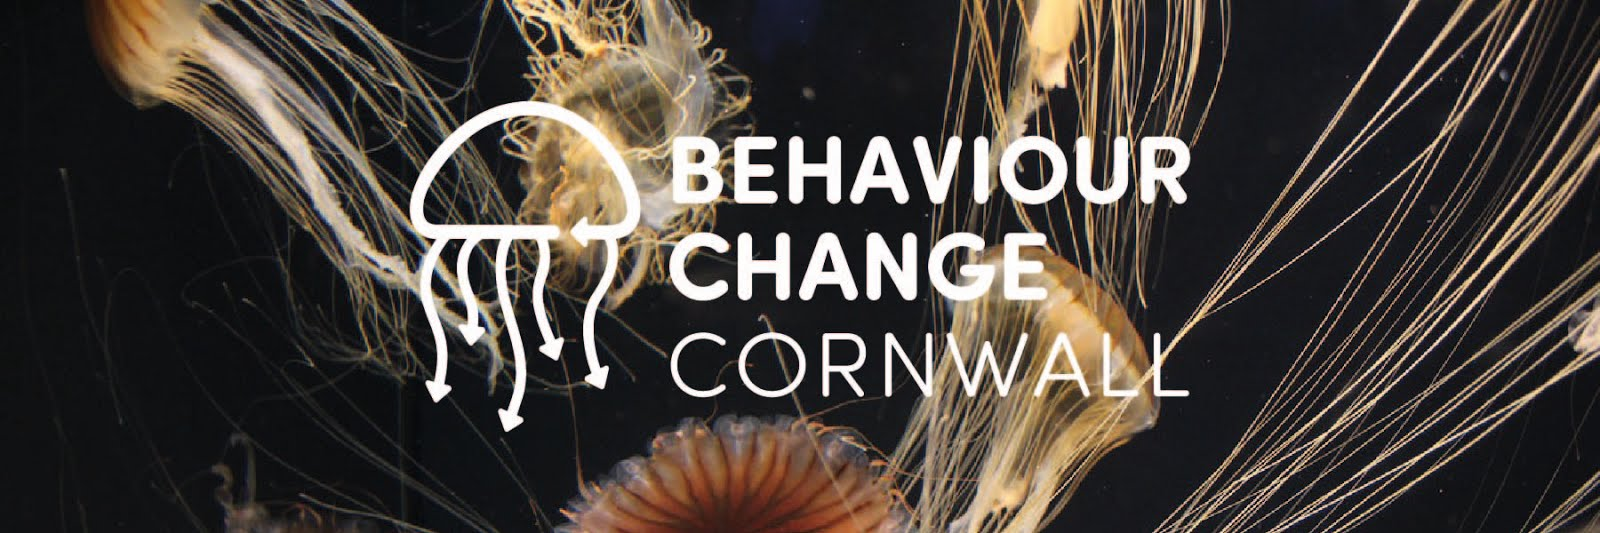 Behaviour Change Cornwall